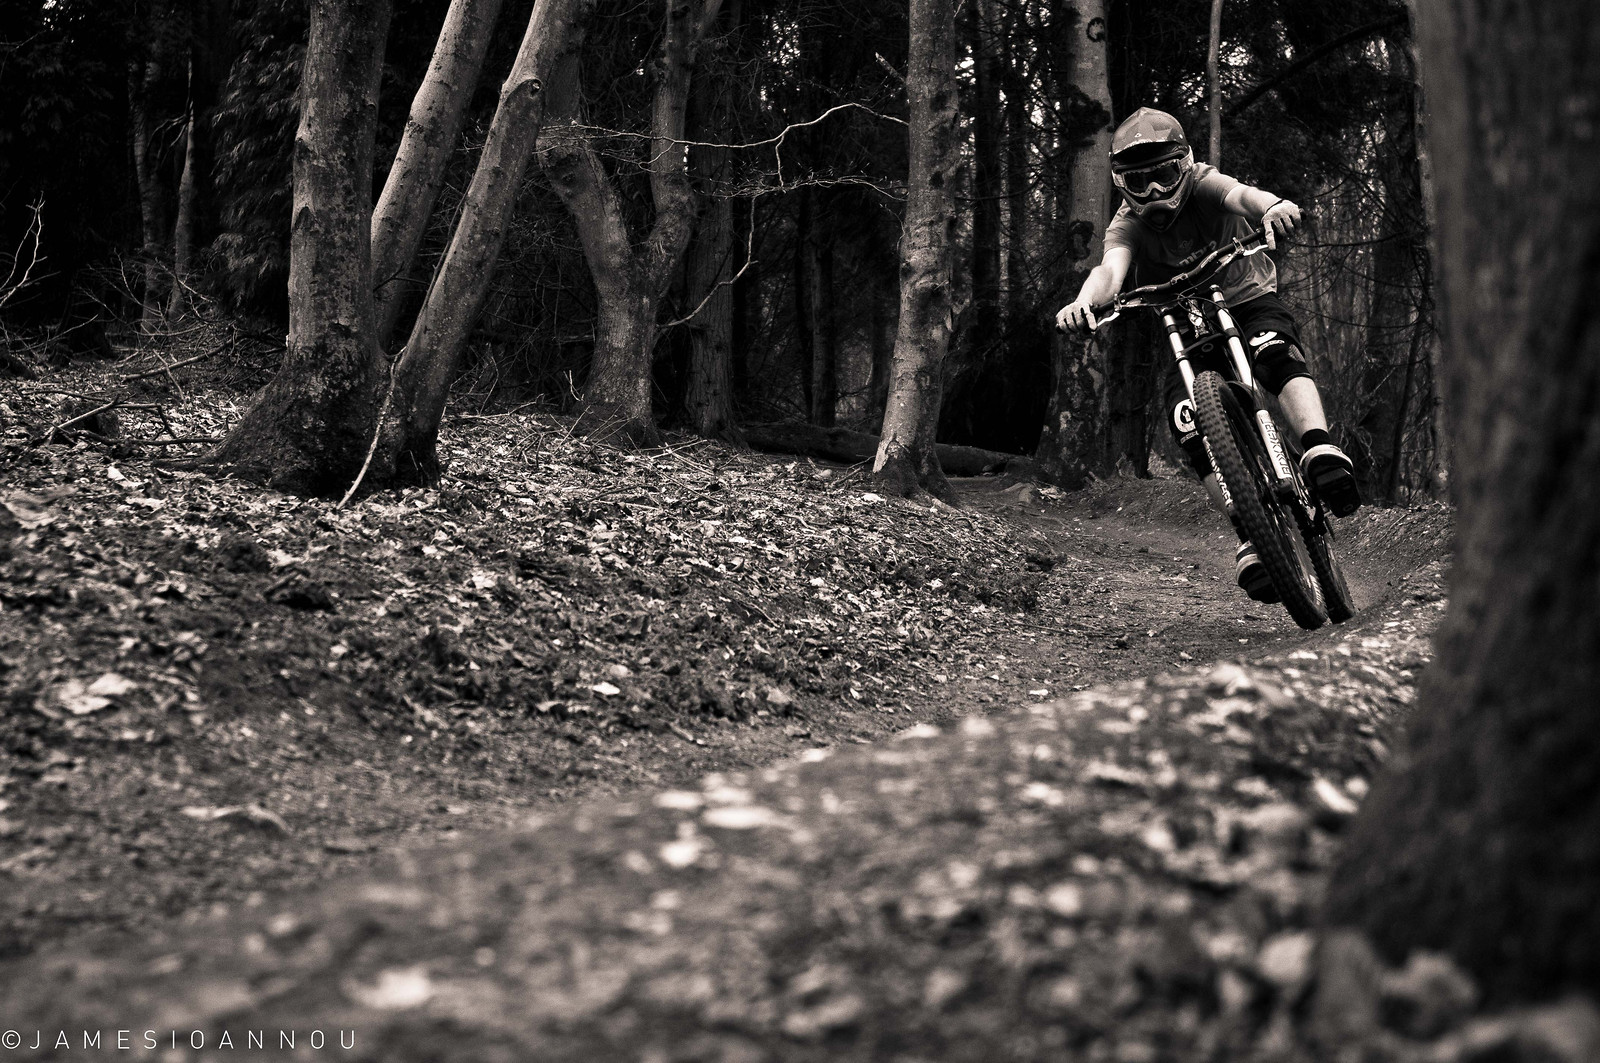 Rob Schaverien - James Ioannou - Mountain Biking Pictures - Vital MTB